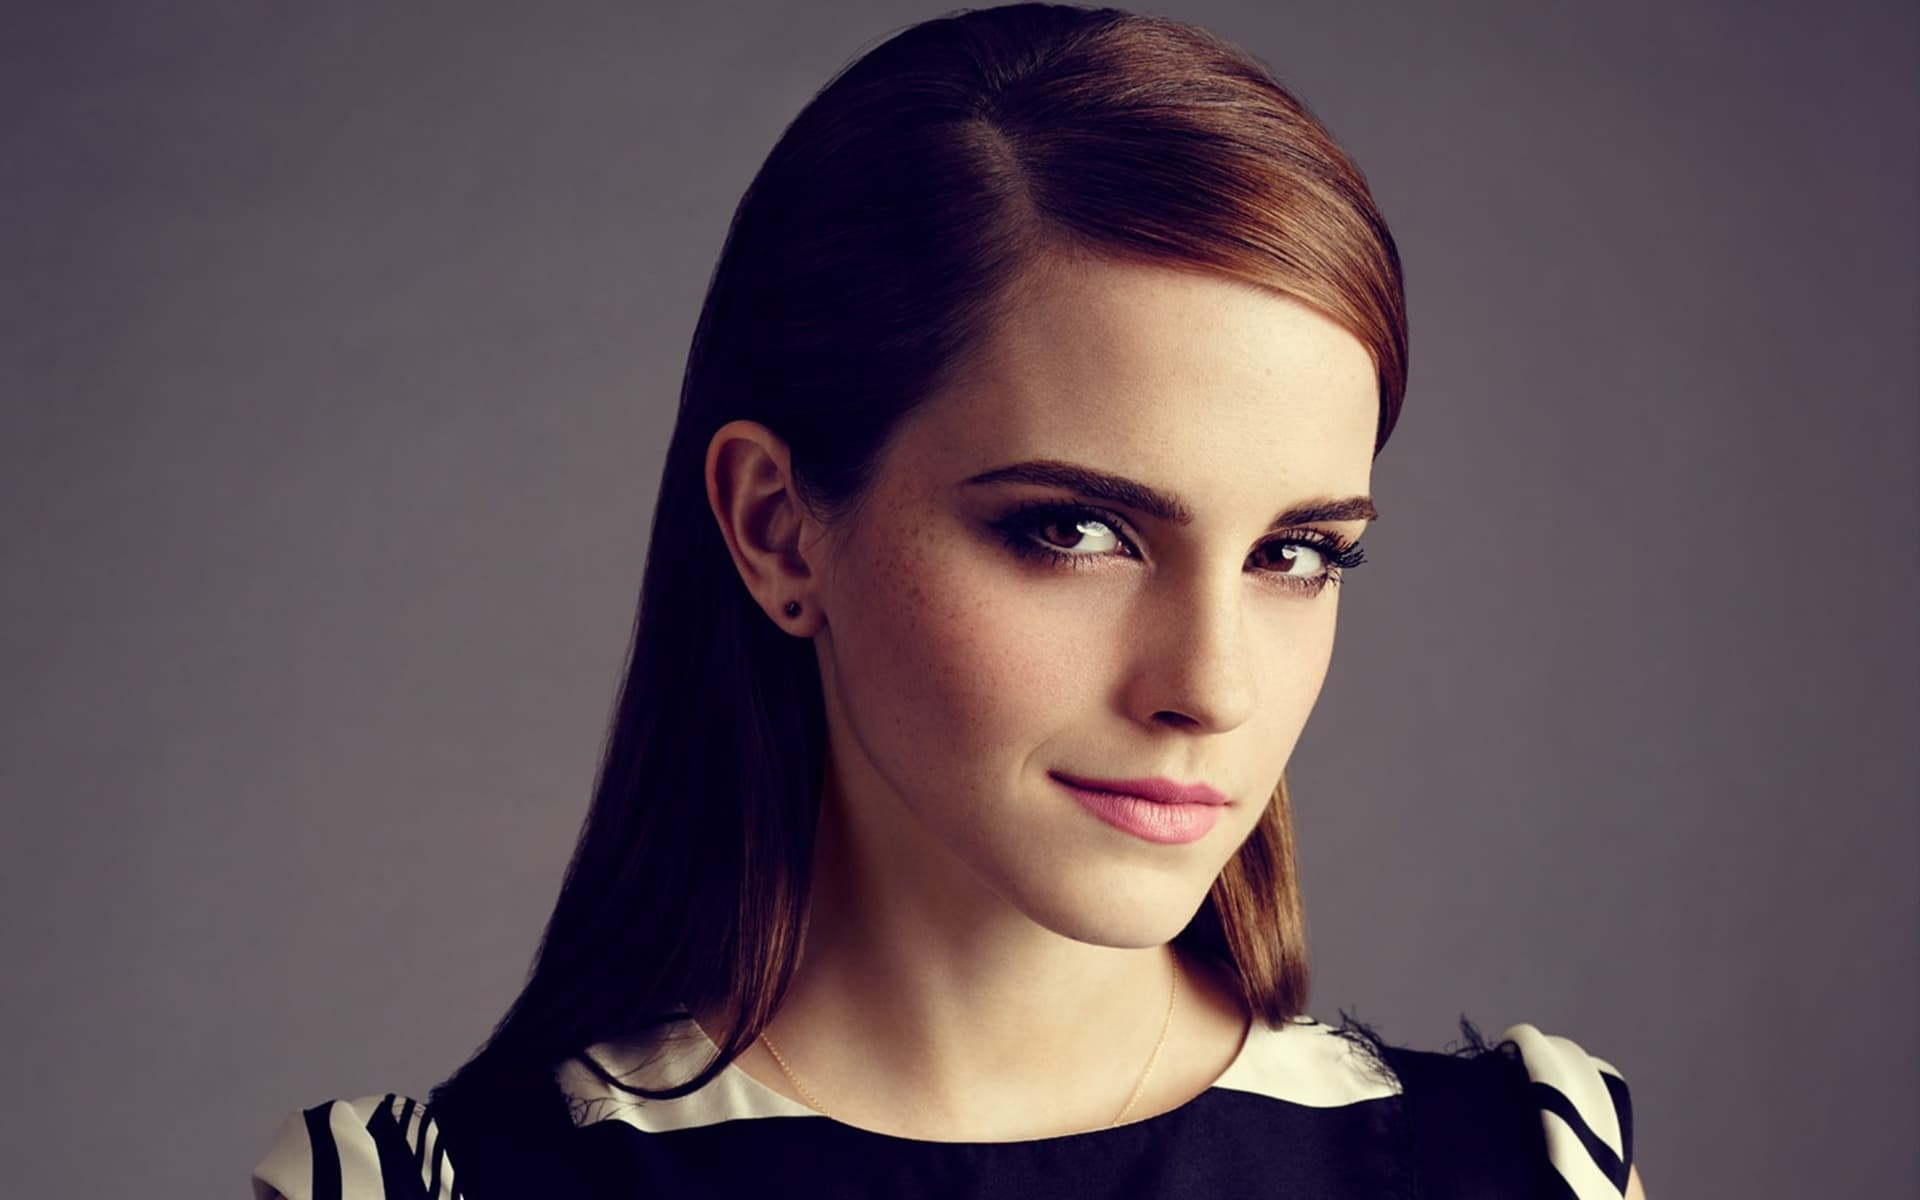 emma watson wallpapers 2016 - wallpaper cave